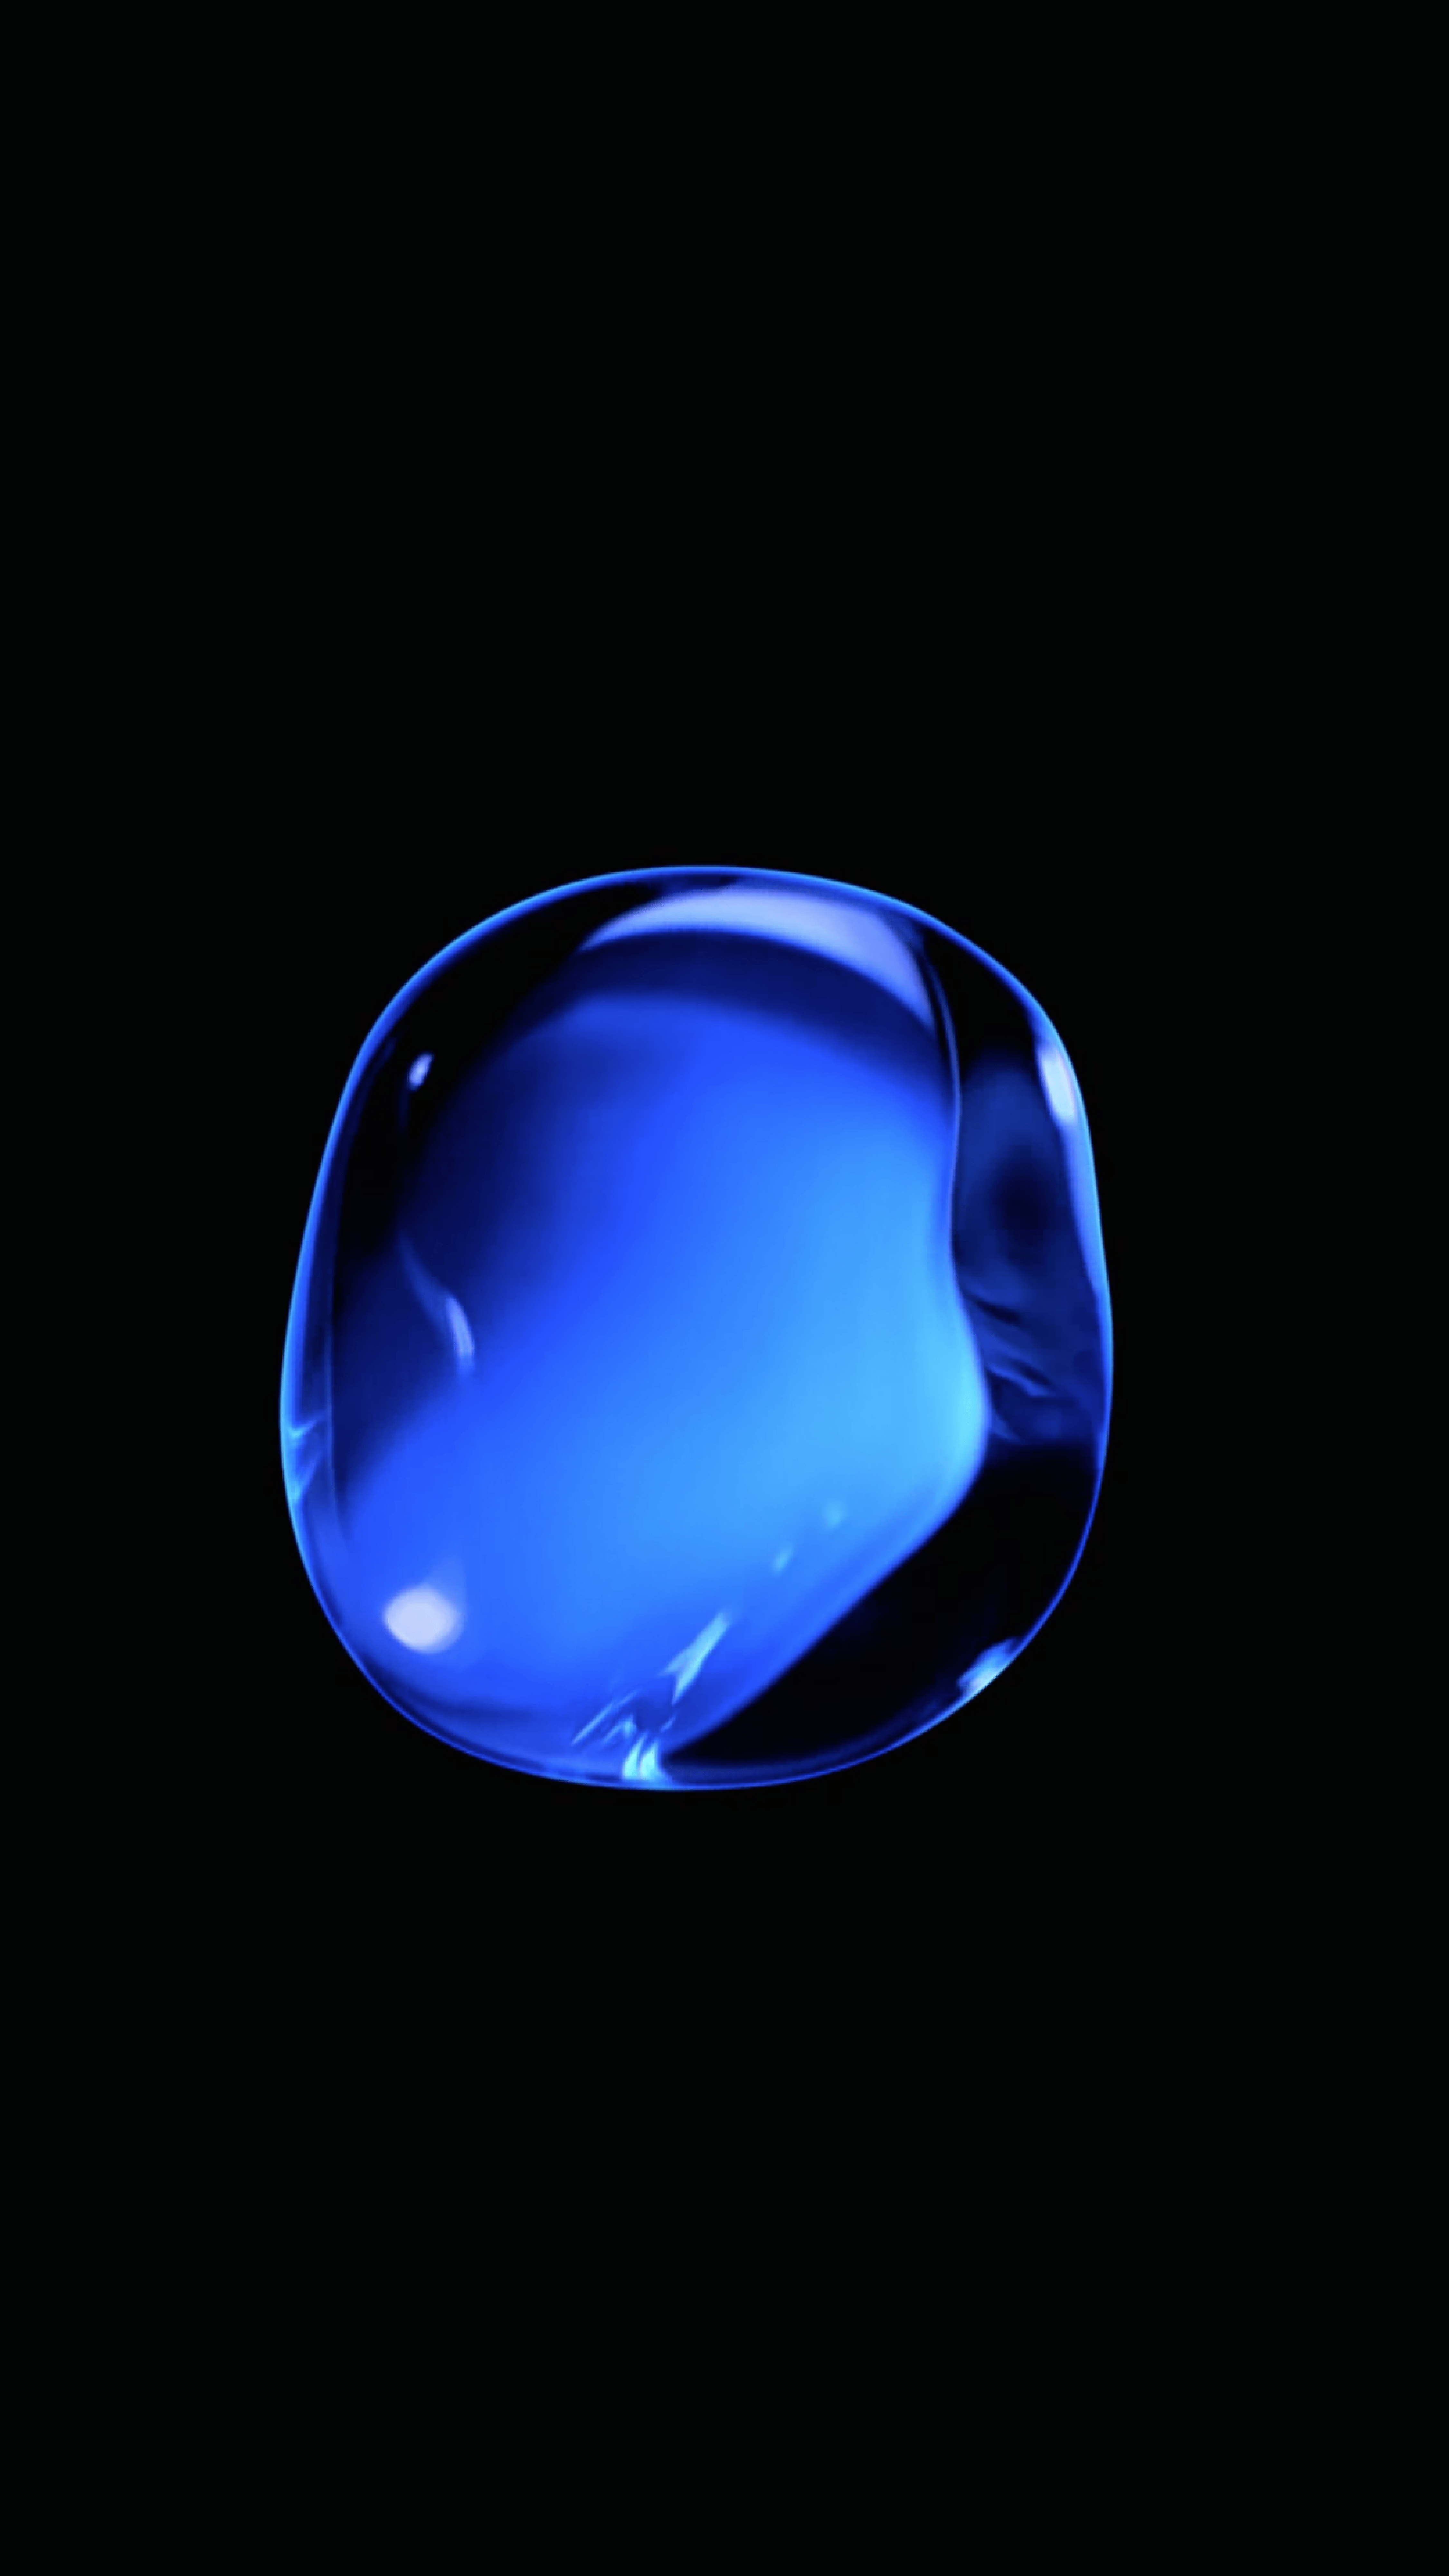 Iphone 7 Wallpapers Wallpaper Cave